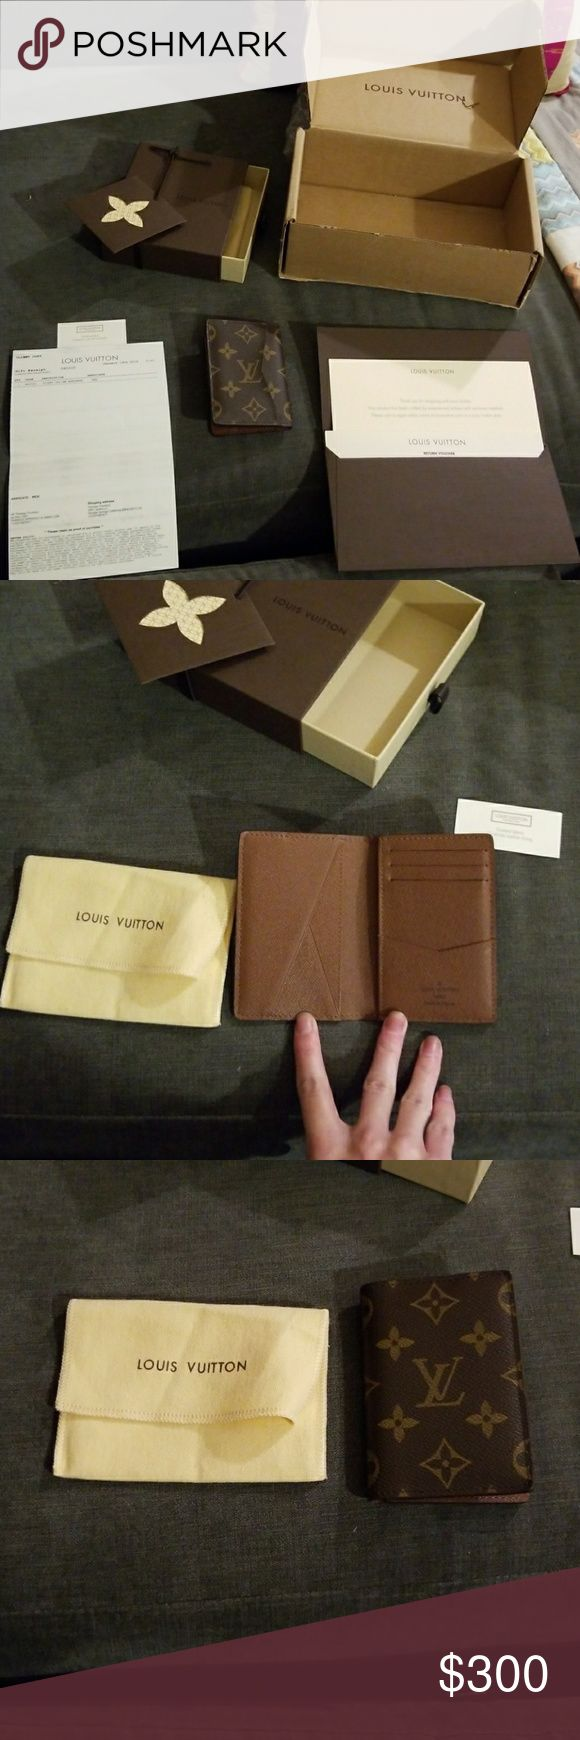 Authentic Small Louis Vuitton wallet Purchased in 2015 this small wallet has great details. In fantastic condition may e used for 2 months. Comes in ALL of the original packaging it was sent in when purchased including original reciept interior care card shipping box storage box and dust bag. Will make a fantastic gift. Even if its being gifted to yourself. Pockets are still tight most of them never used. Louis Vuitton Bags Wallets